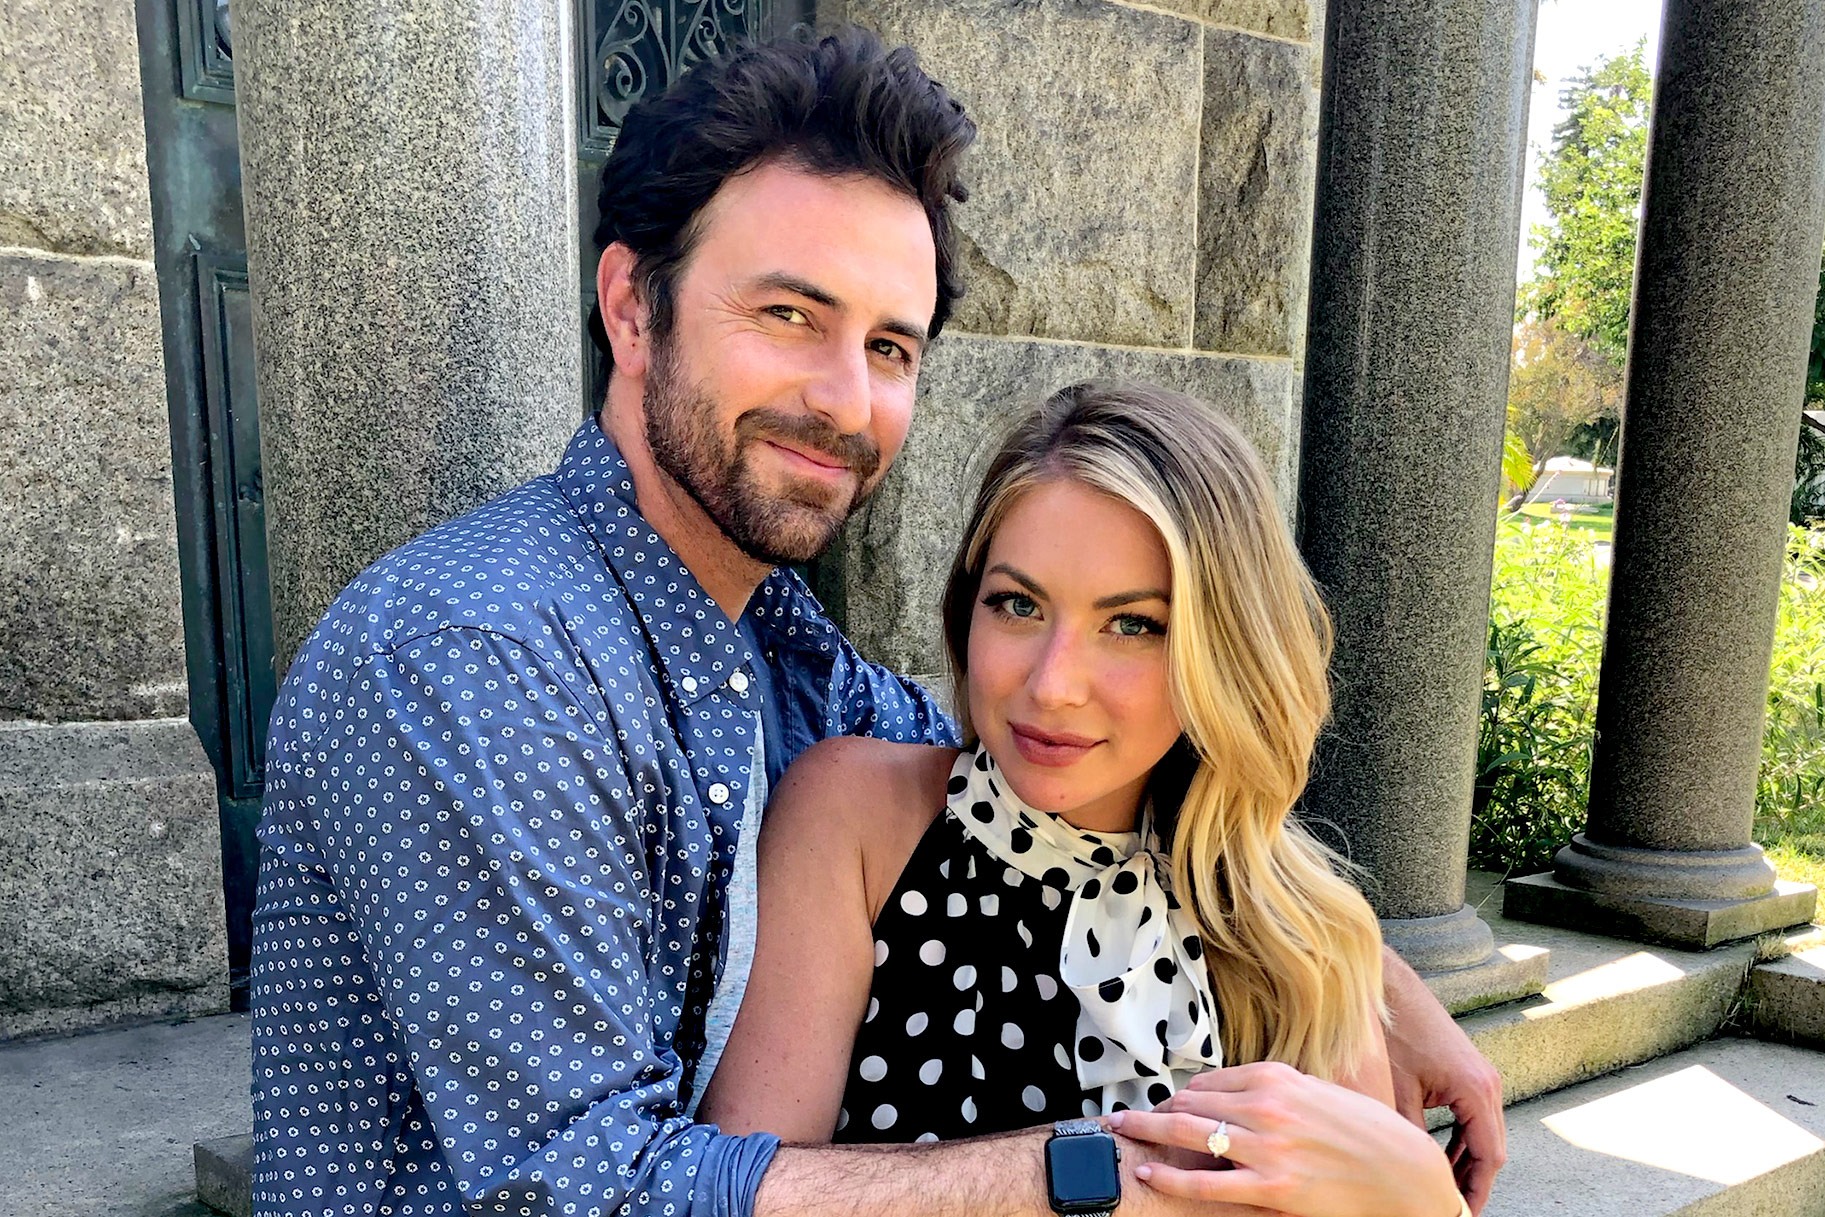 Stassi Schroeder and Beau Clark engaged